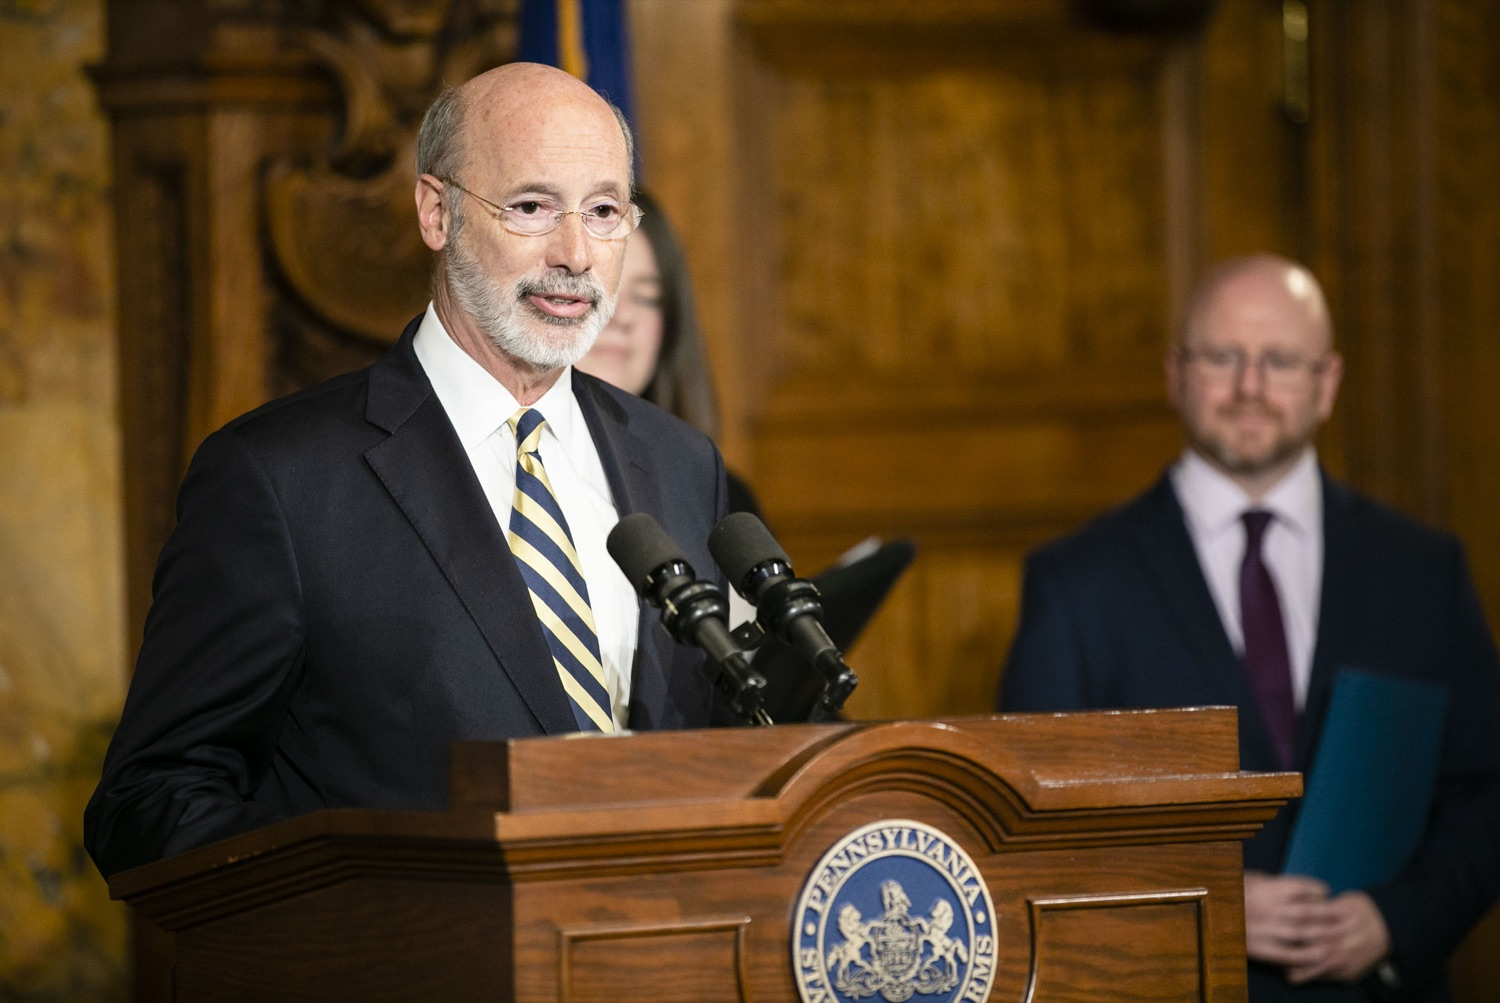 "<a href=""http://filesource.abacast.com/commonwealthofpa/photo/17564_GOV_aca_amb_007.jpg"" target=""_blank"">⇣ Download Photo<br></a>Governor Tom Wolf and Insurance Commissioner Jessica Altman advised Pennsylvanians that now is the time to buy health insurance on the federal exchange, healthcare.gov, as open enrollment continues for Affordable Care Act (ACA) plans through Dec. 15. Consumers have more options in Pennsylvania, and many will find they qualify for subsidies. November 7, 2019. Harrisburg, PA."